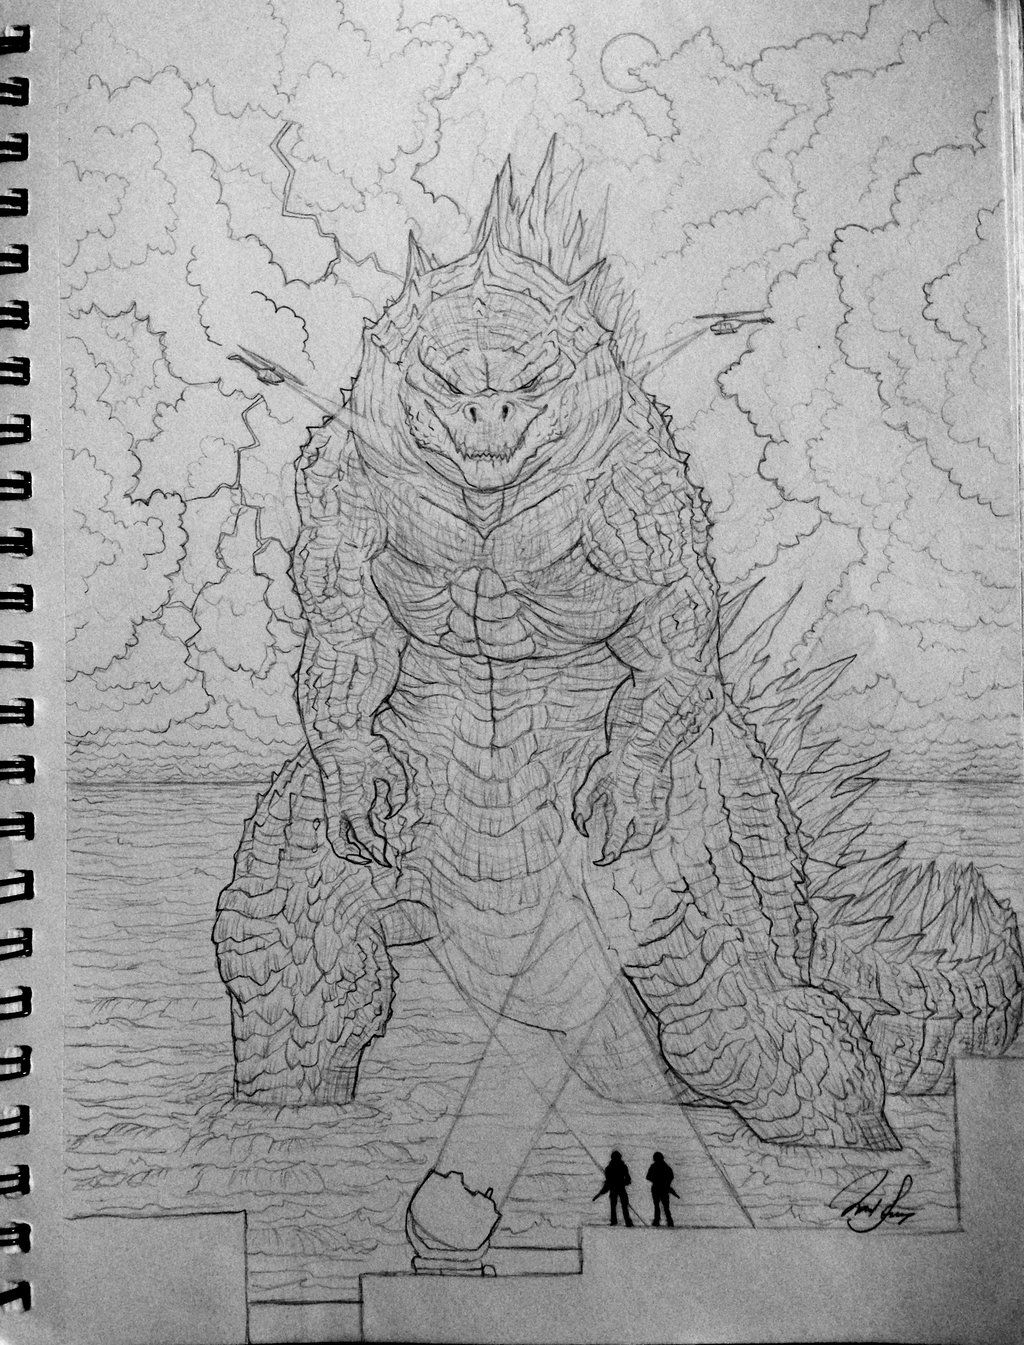 Godzilla 2014 by sooothisisart wow on deviantart in 2019